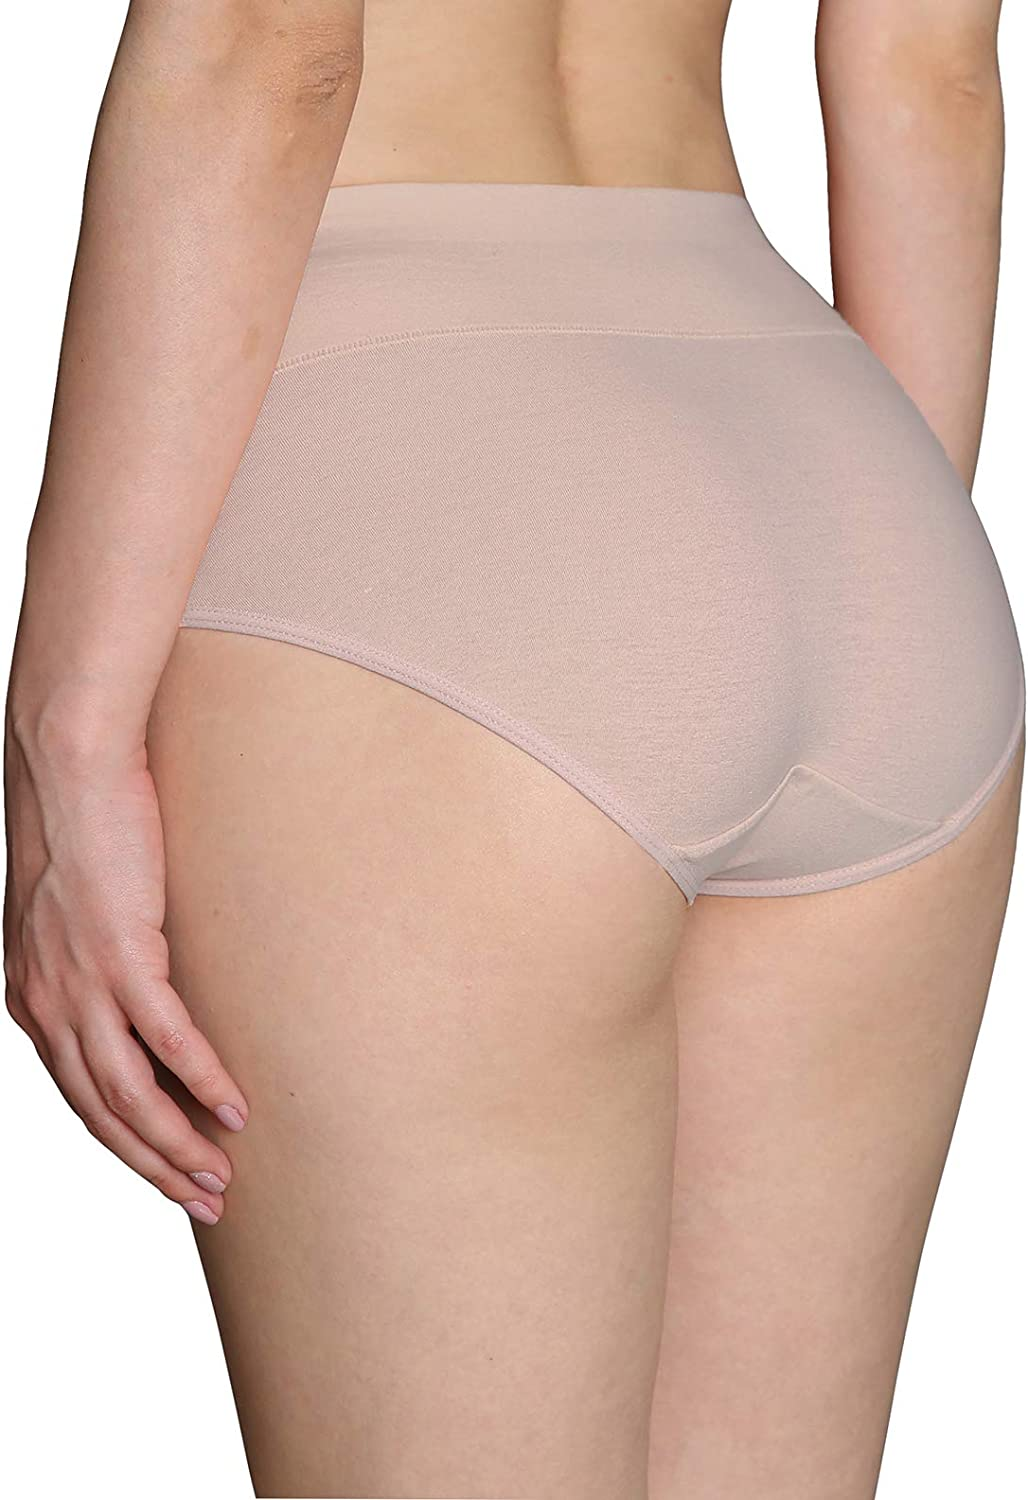 INNERSY Womens High Waisted Underwear Cotton Plus Size Ladies Panties Multipack